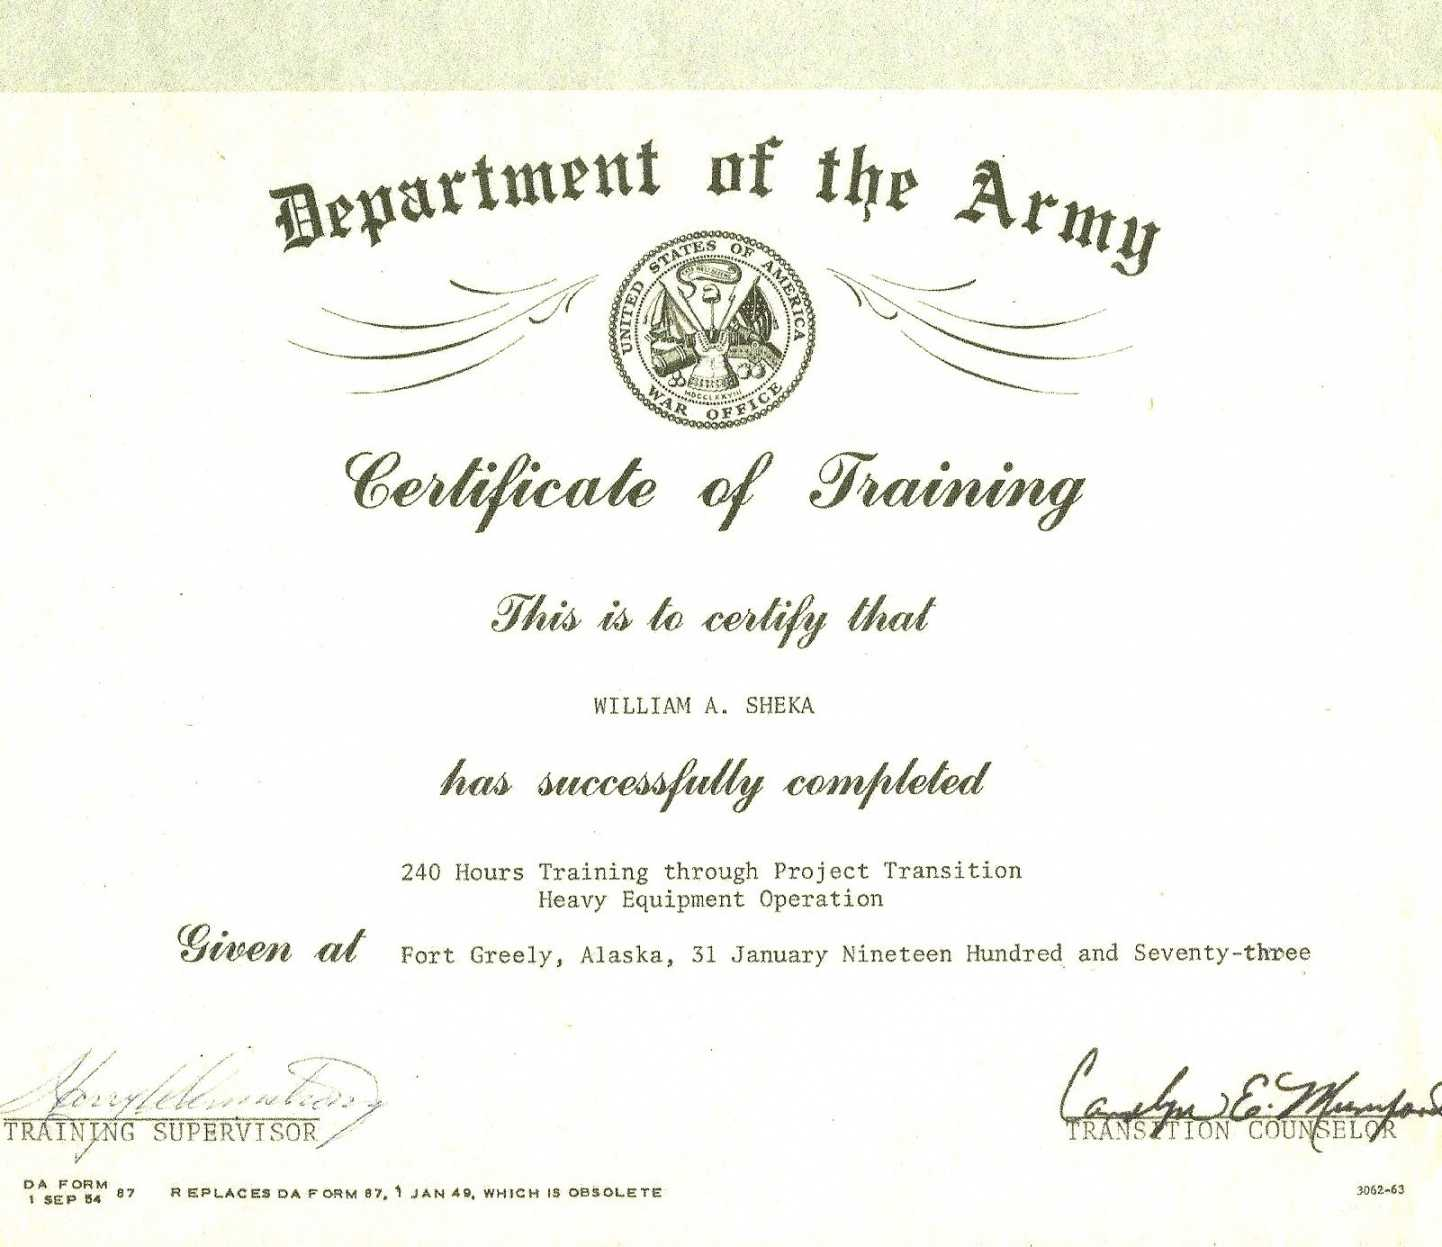 Army Certificate Of Training Template - Karan.ald2014 Inside Army Certificate Of Completion Template